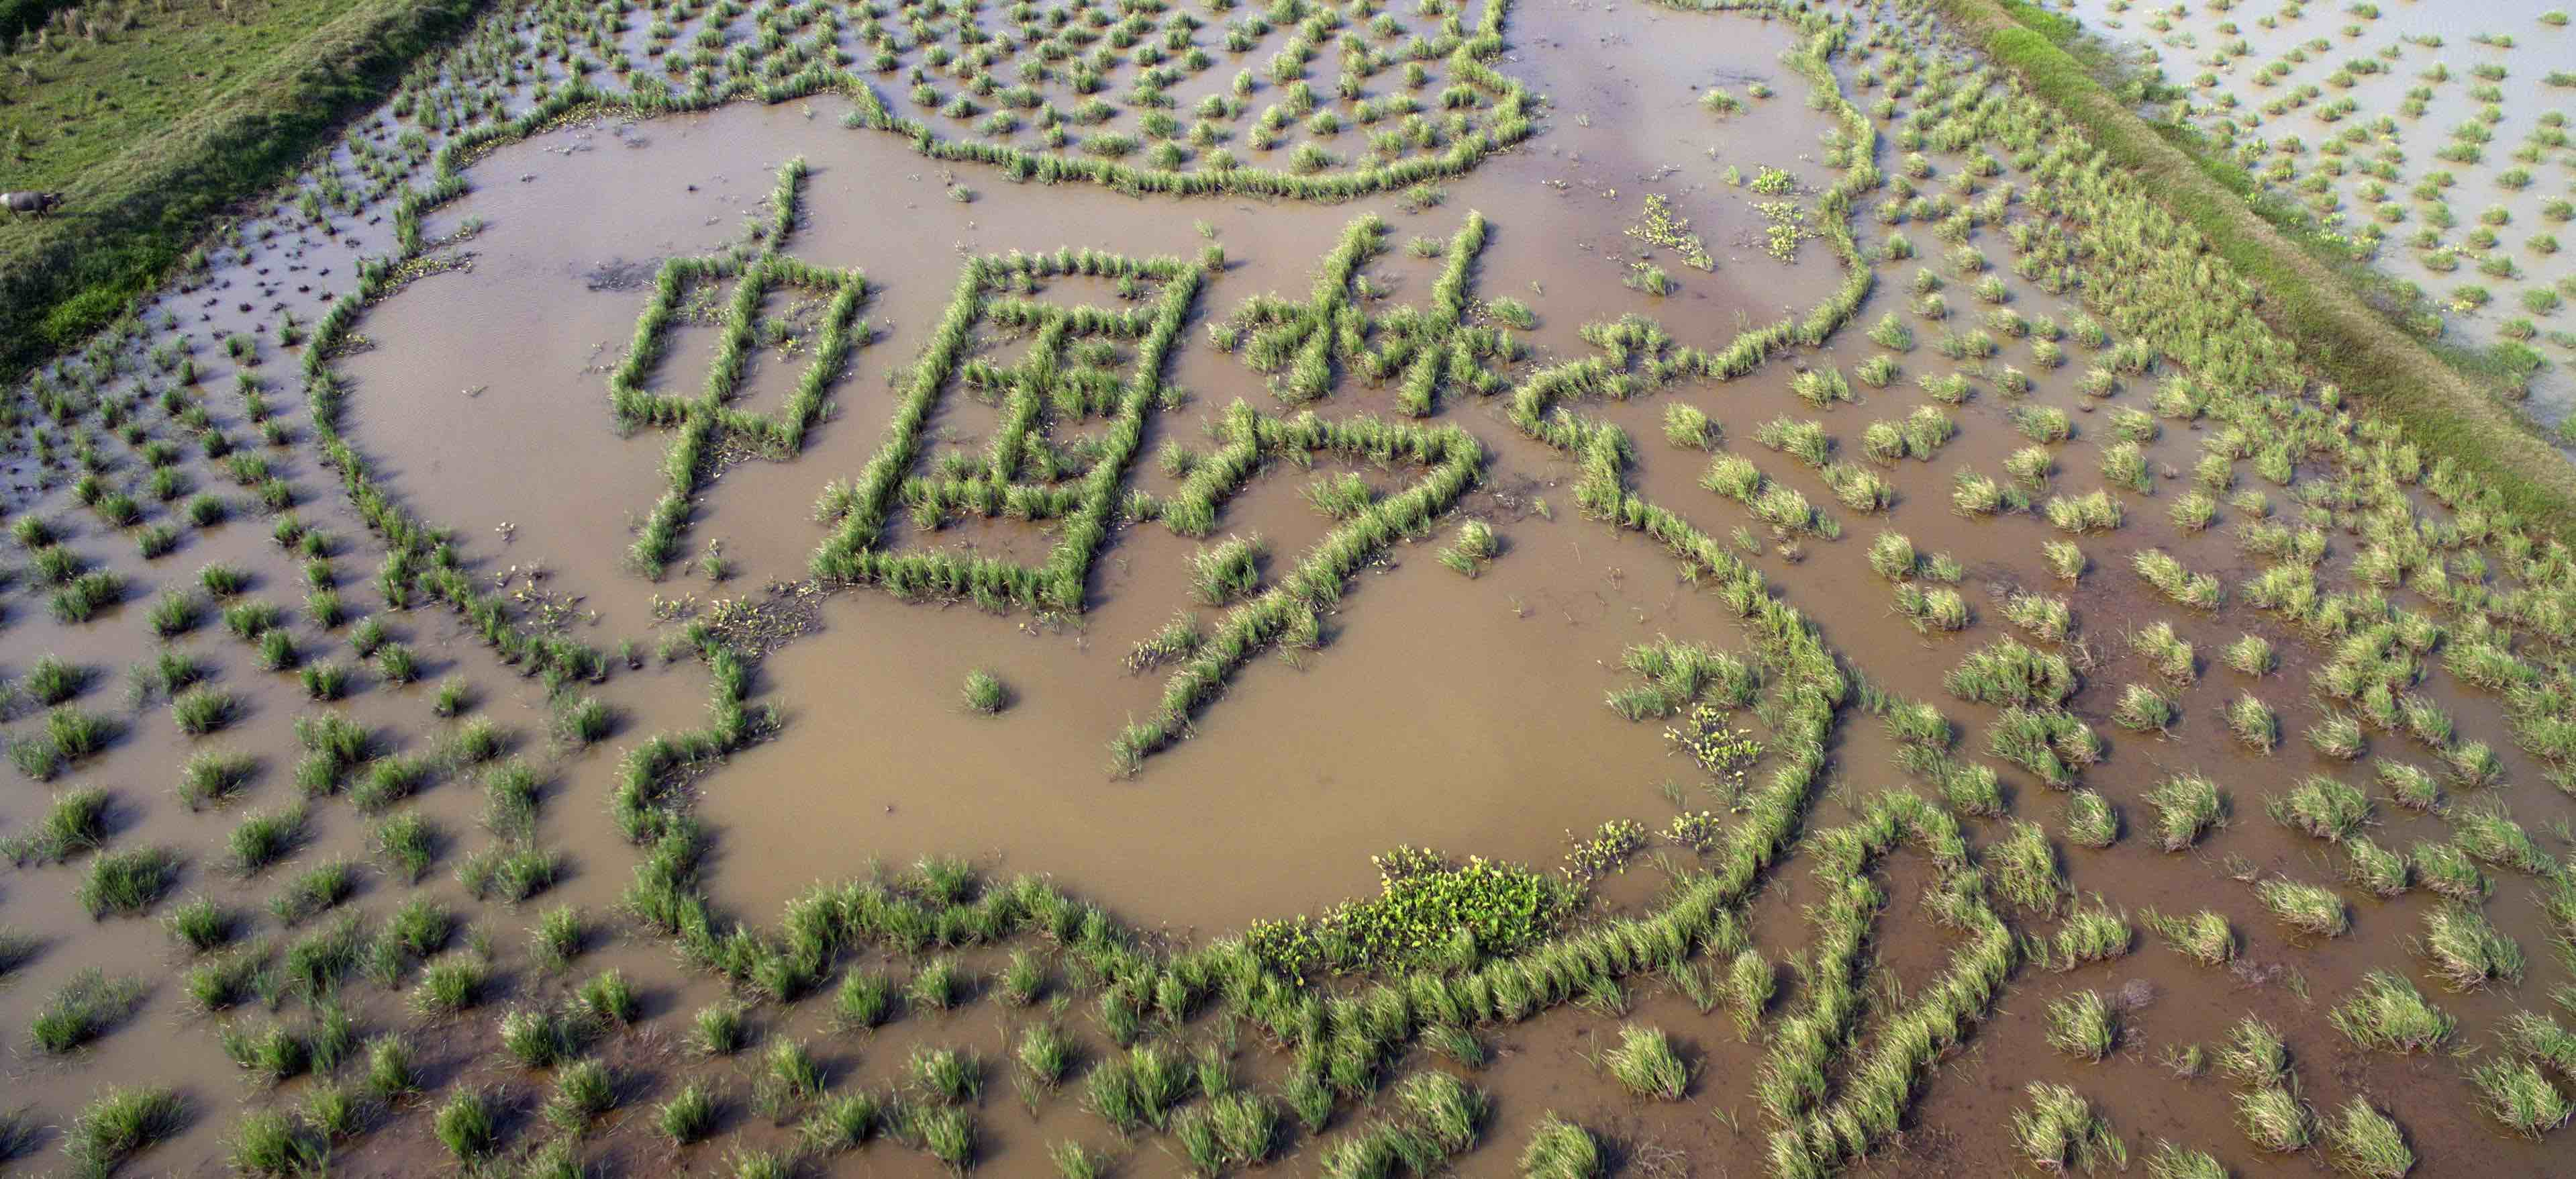 """Characters meaning """"Chinese Dream"""" grow in a paddy field in Hainan province, 2016 (Photo: VCG via Getty)"""